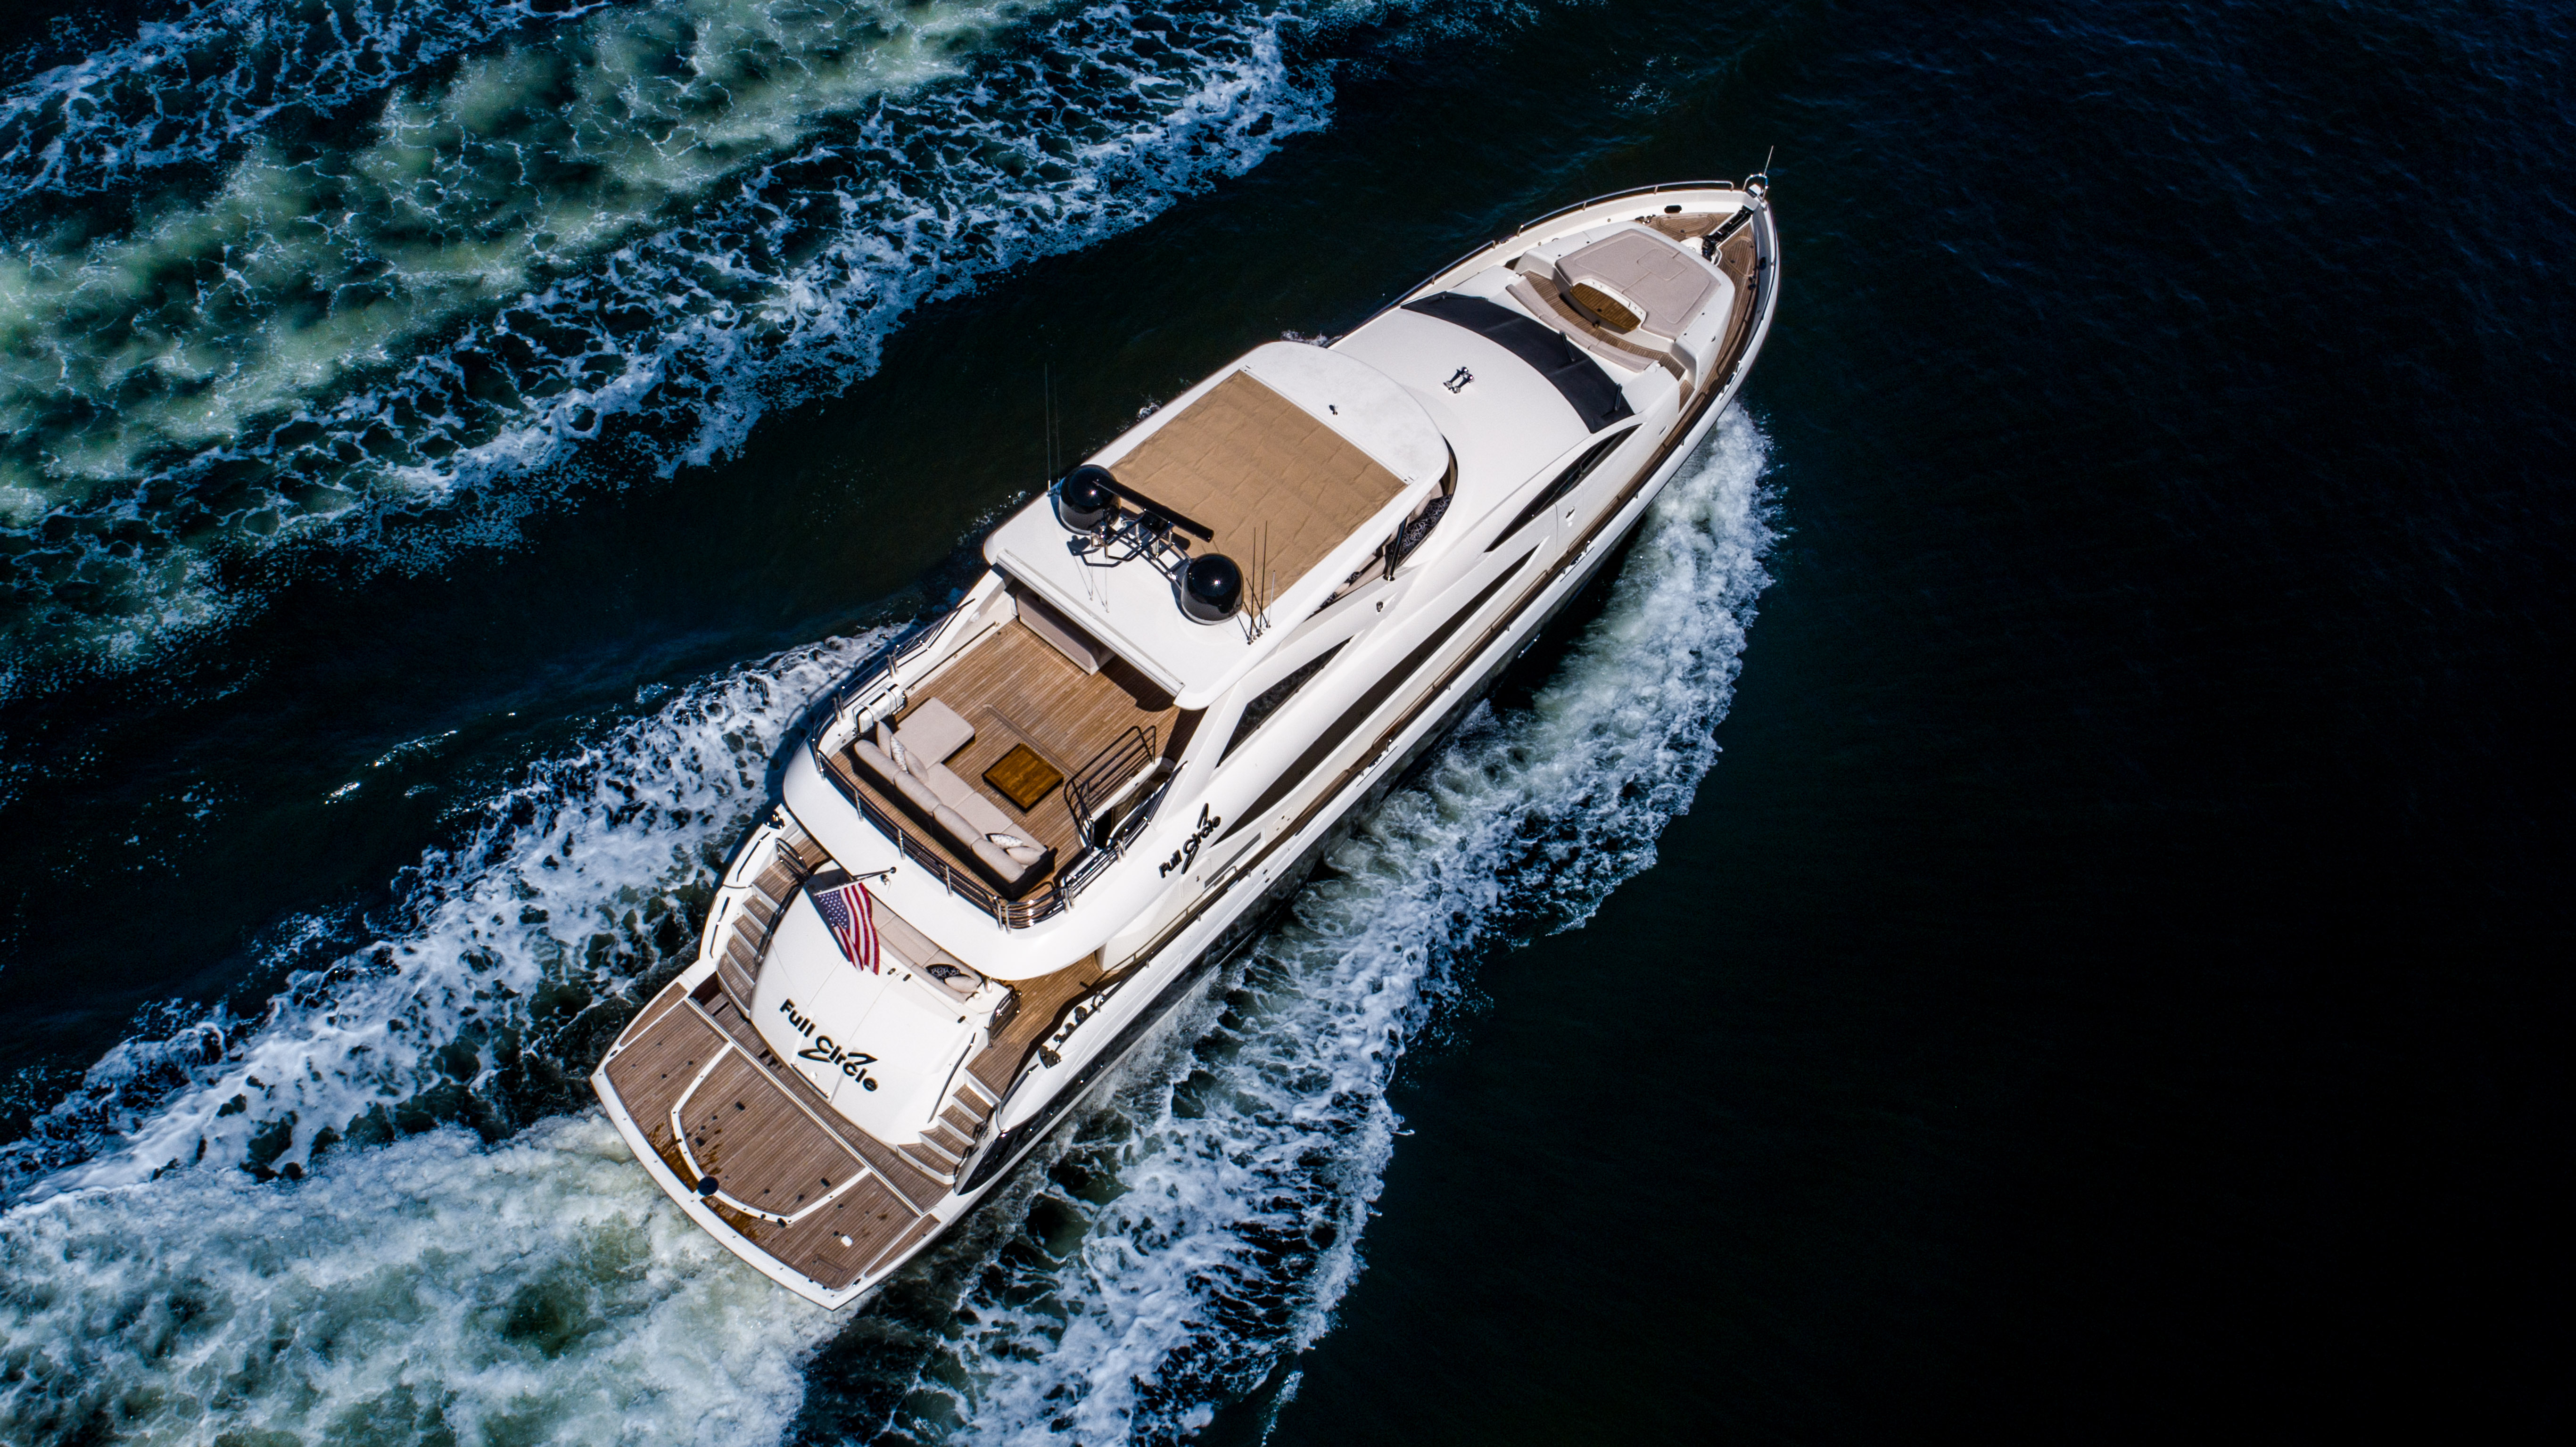 88-2014-sunseeker-full-circle-08